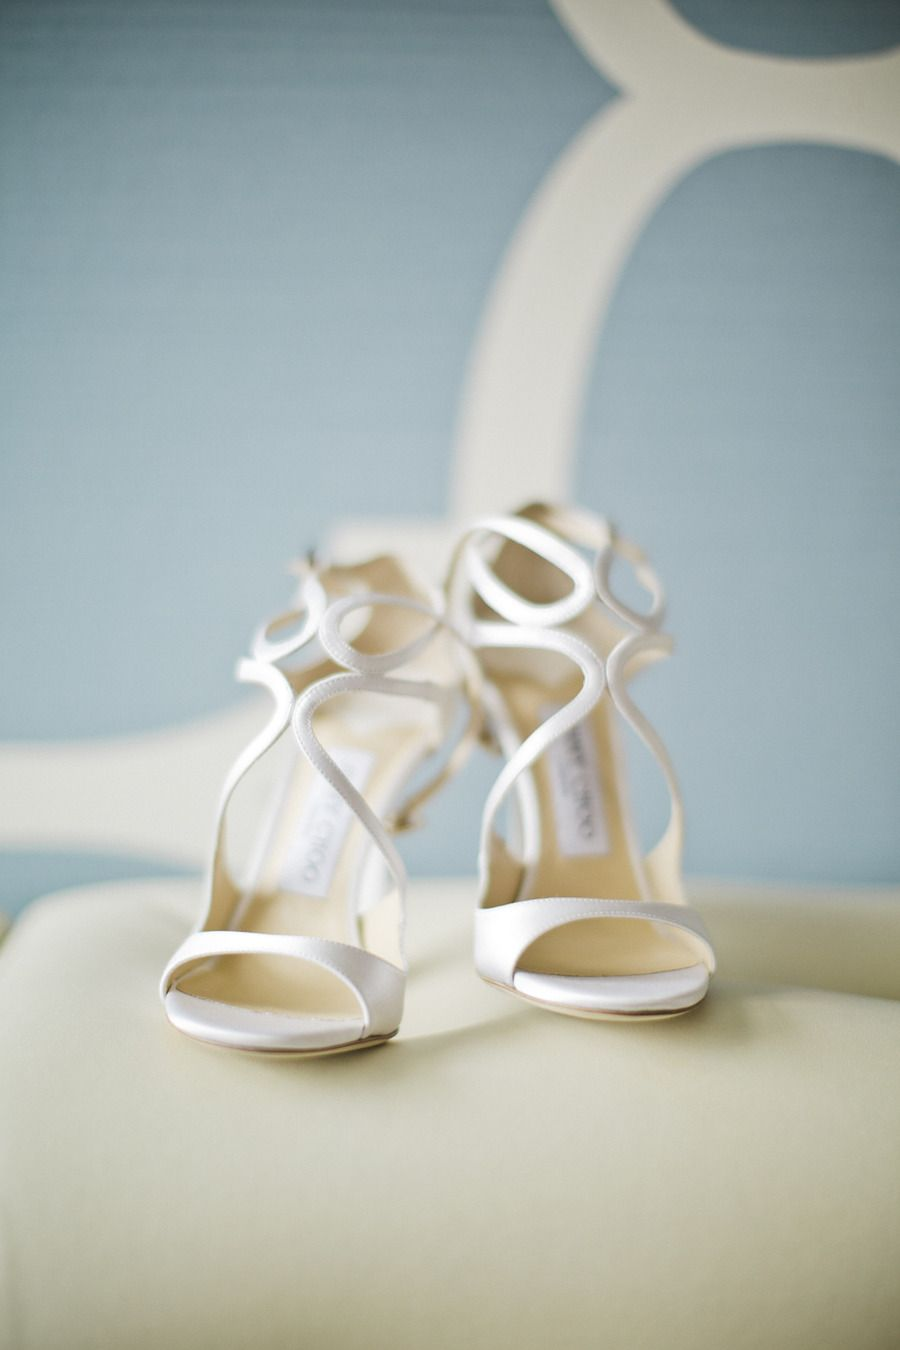 Jimmy Choo Sandals Blue Cream Photography Cly By Chung